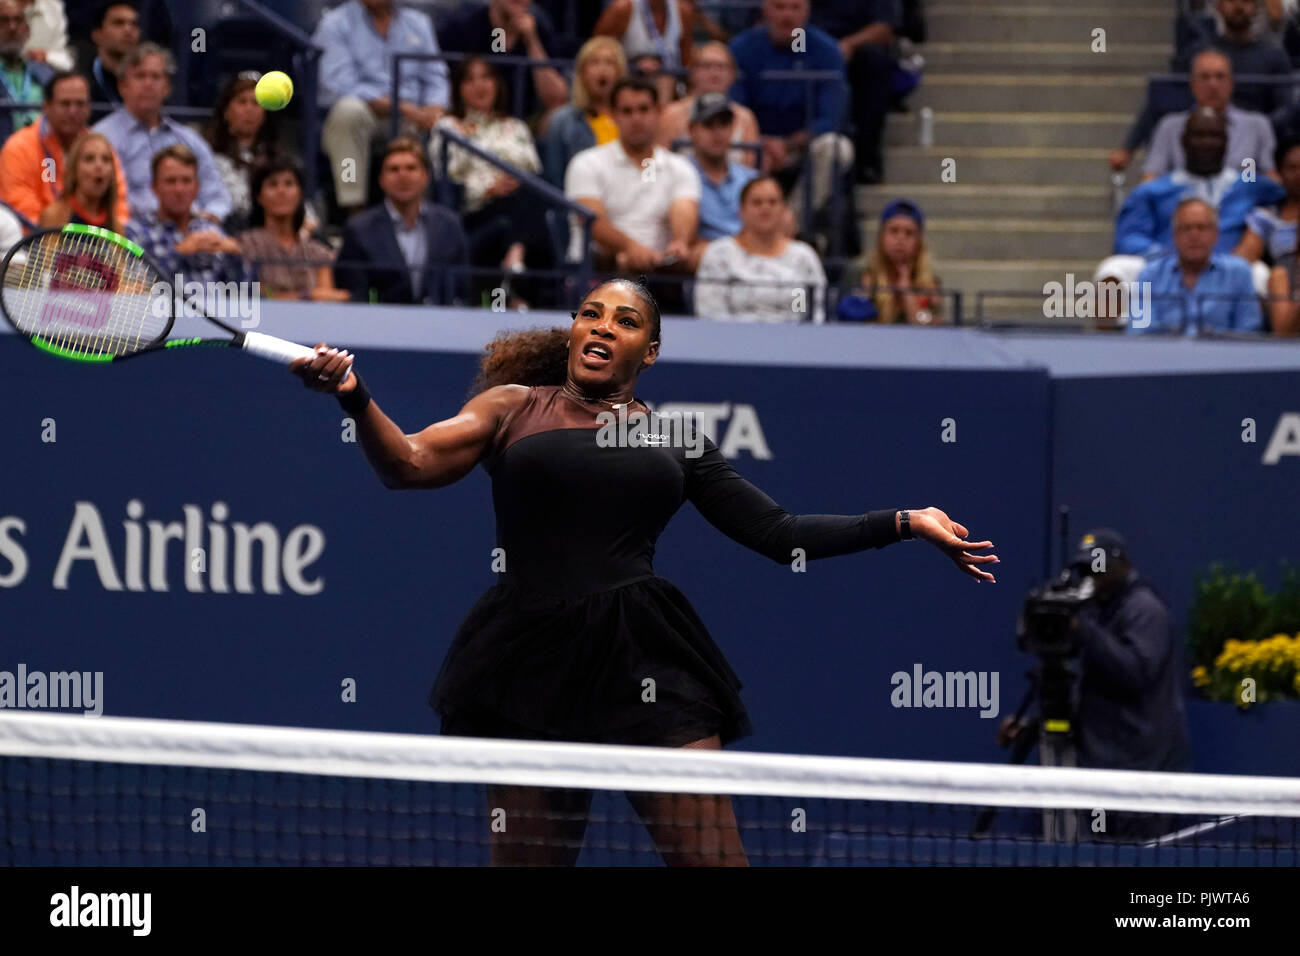 New York, USA. 8th September 2018.  US Open Tennis:  Serena Williams punches a forehand volley for a winner during her loss to Naomi Osaka of Japan in the US Open women's final. Williams was penalized a game at 4-3 in the final set, which added controversy to the match. Credit: Adam Stoltman/Alamy Live News - Stock Image